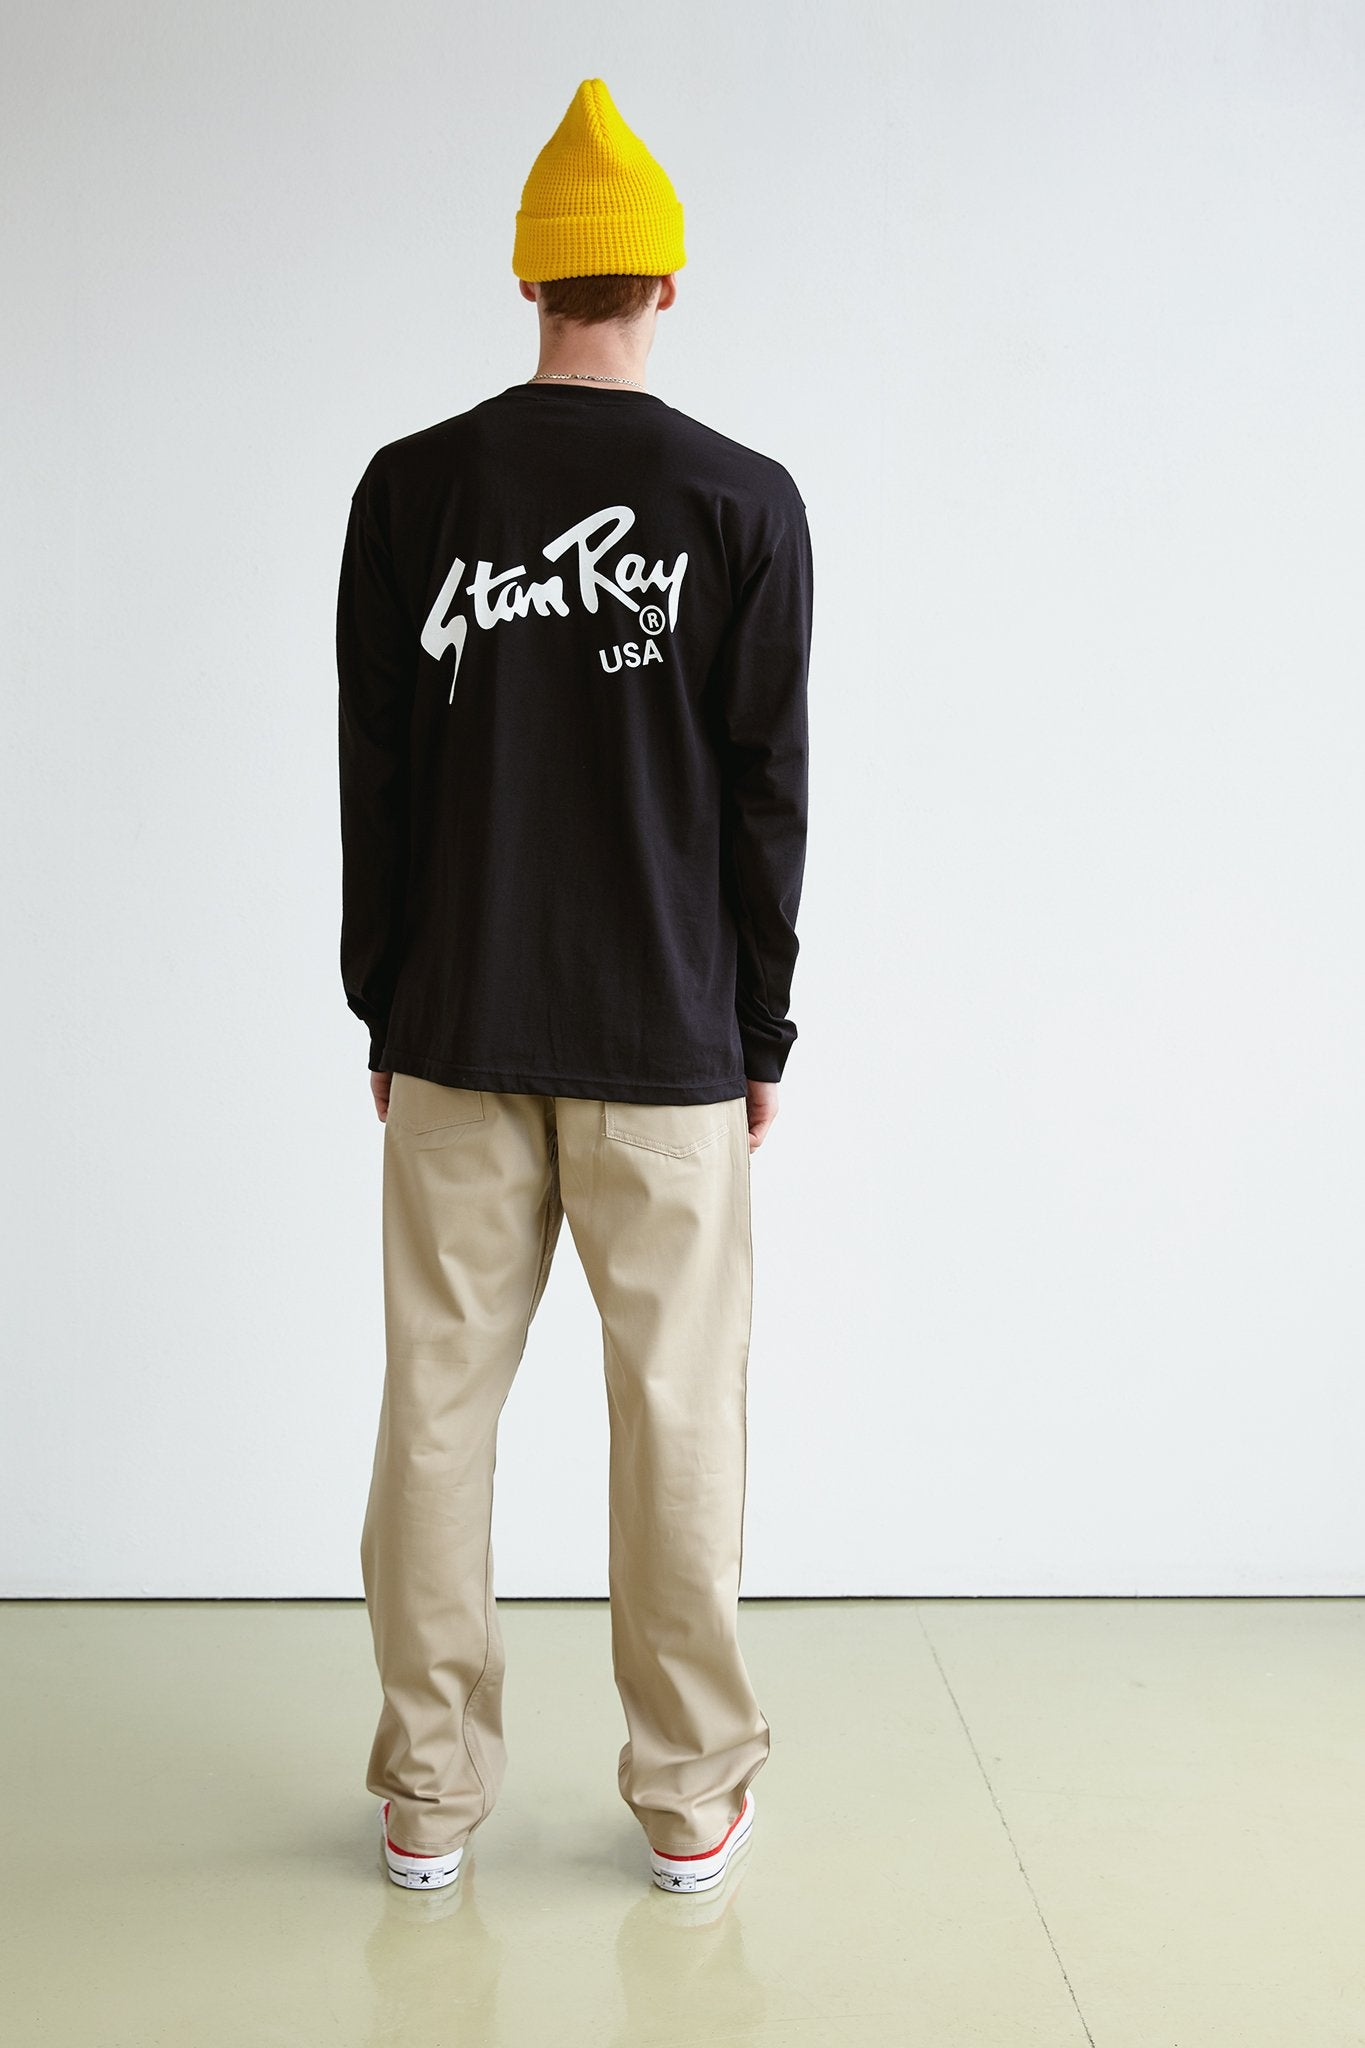 stan ray - loose fit fatigue pant 3